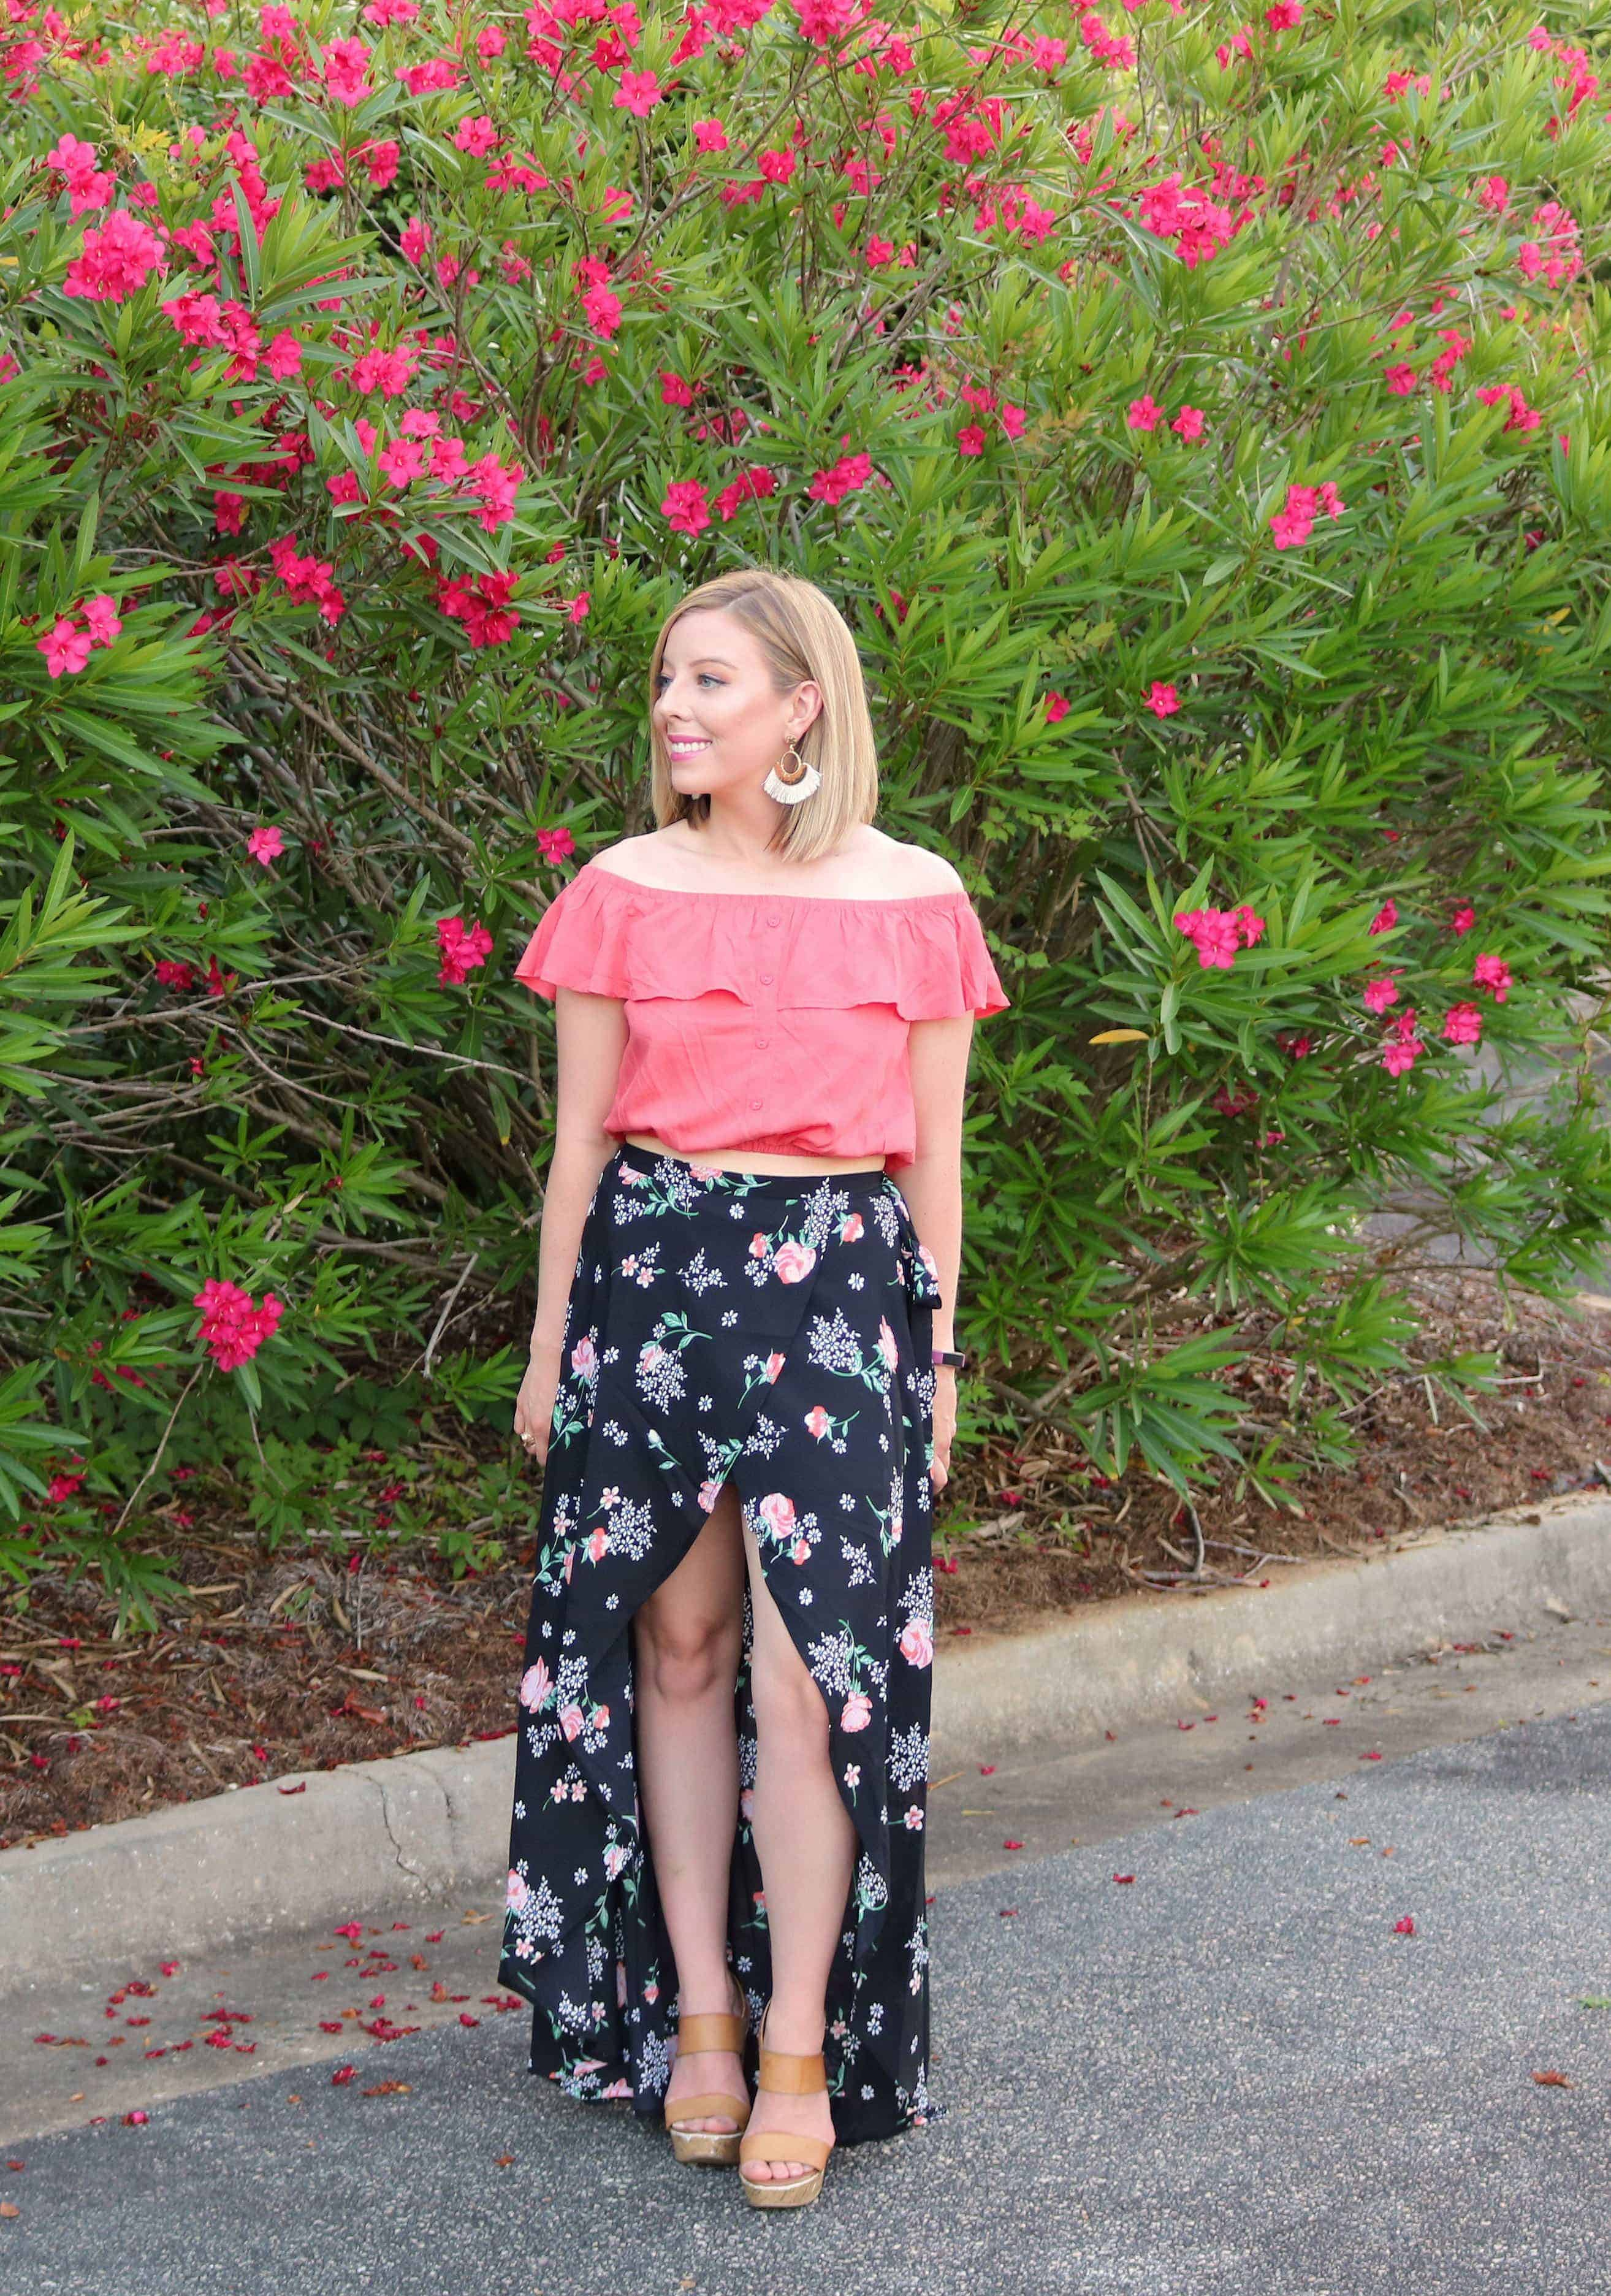 Looking for the latest fashion trends like this floral skirt and off shoulder crop top? Check out my roundup of Summer 2019 Fashion Trends to Wear including cute and affordable outfit ideas you can find at your local Bealls Outlet! #ad #beallsoutlet #summerfashion #springfashion #cuteoutfits